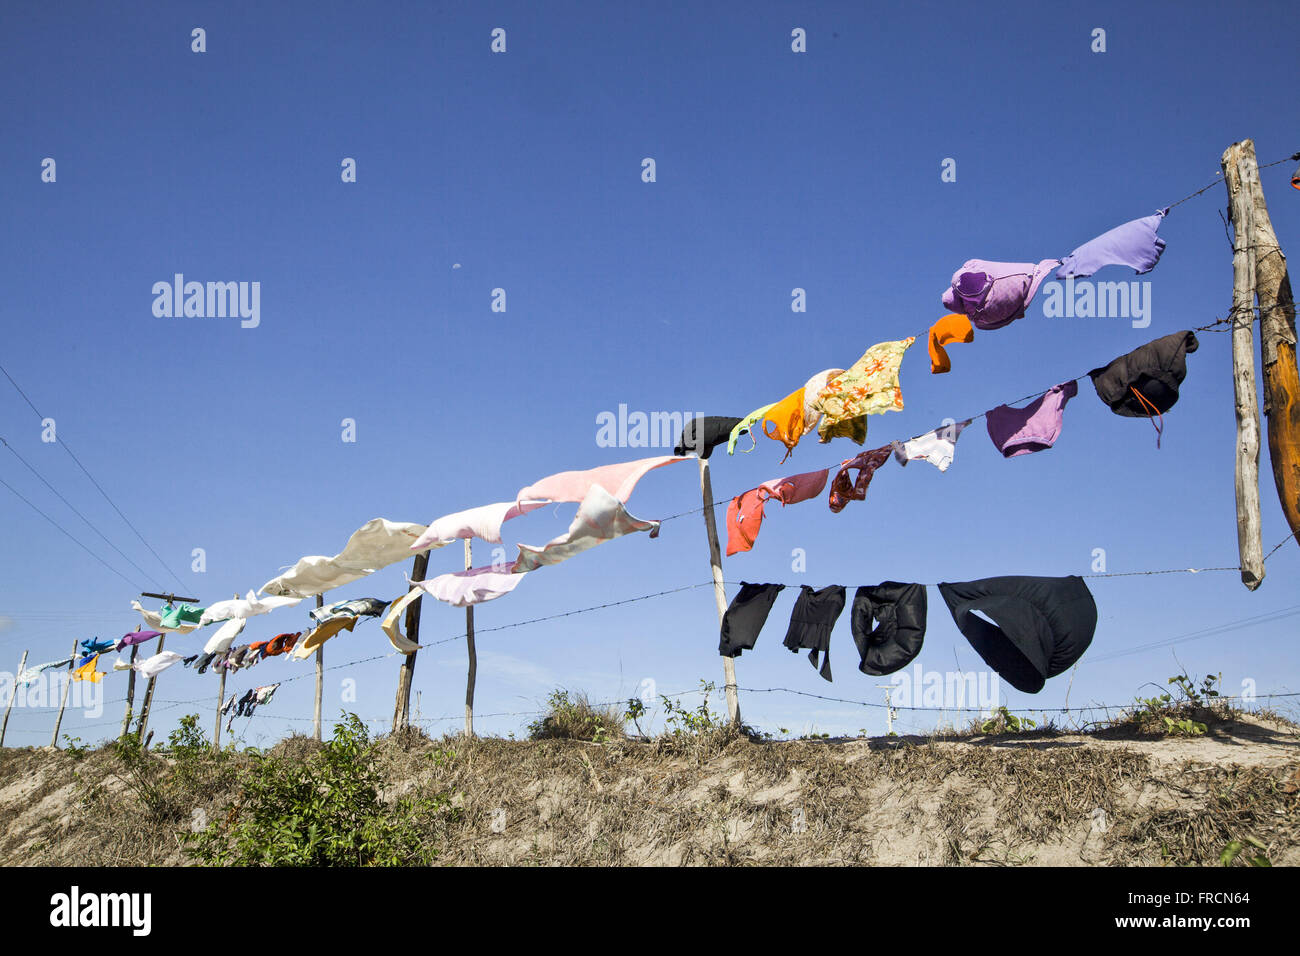 Clothes drying on clothesline - Stock Image